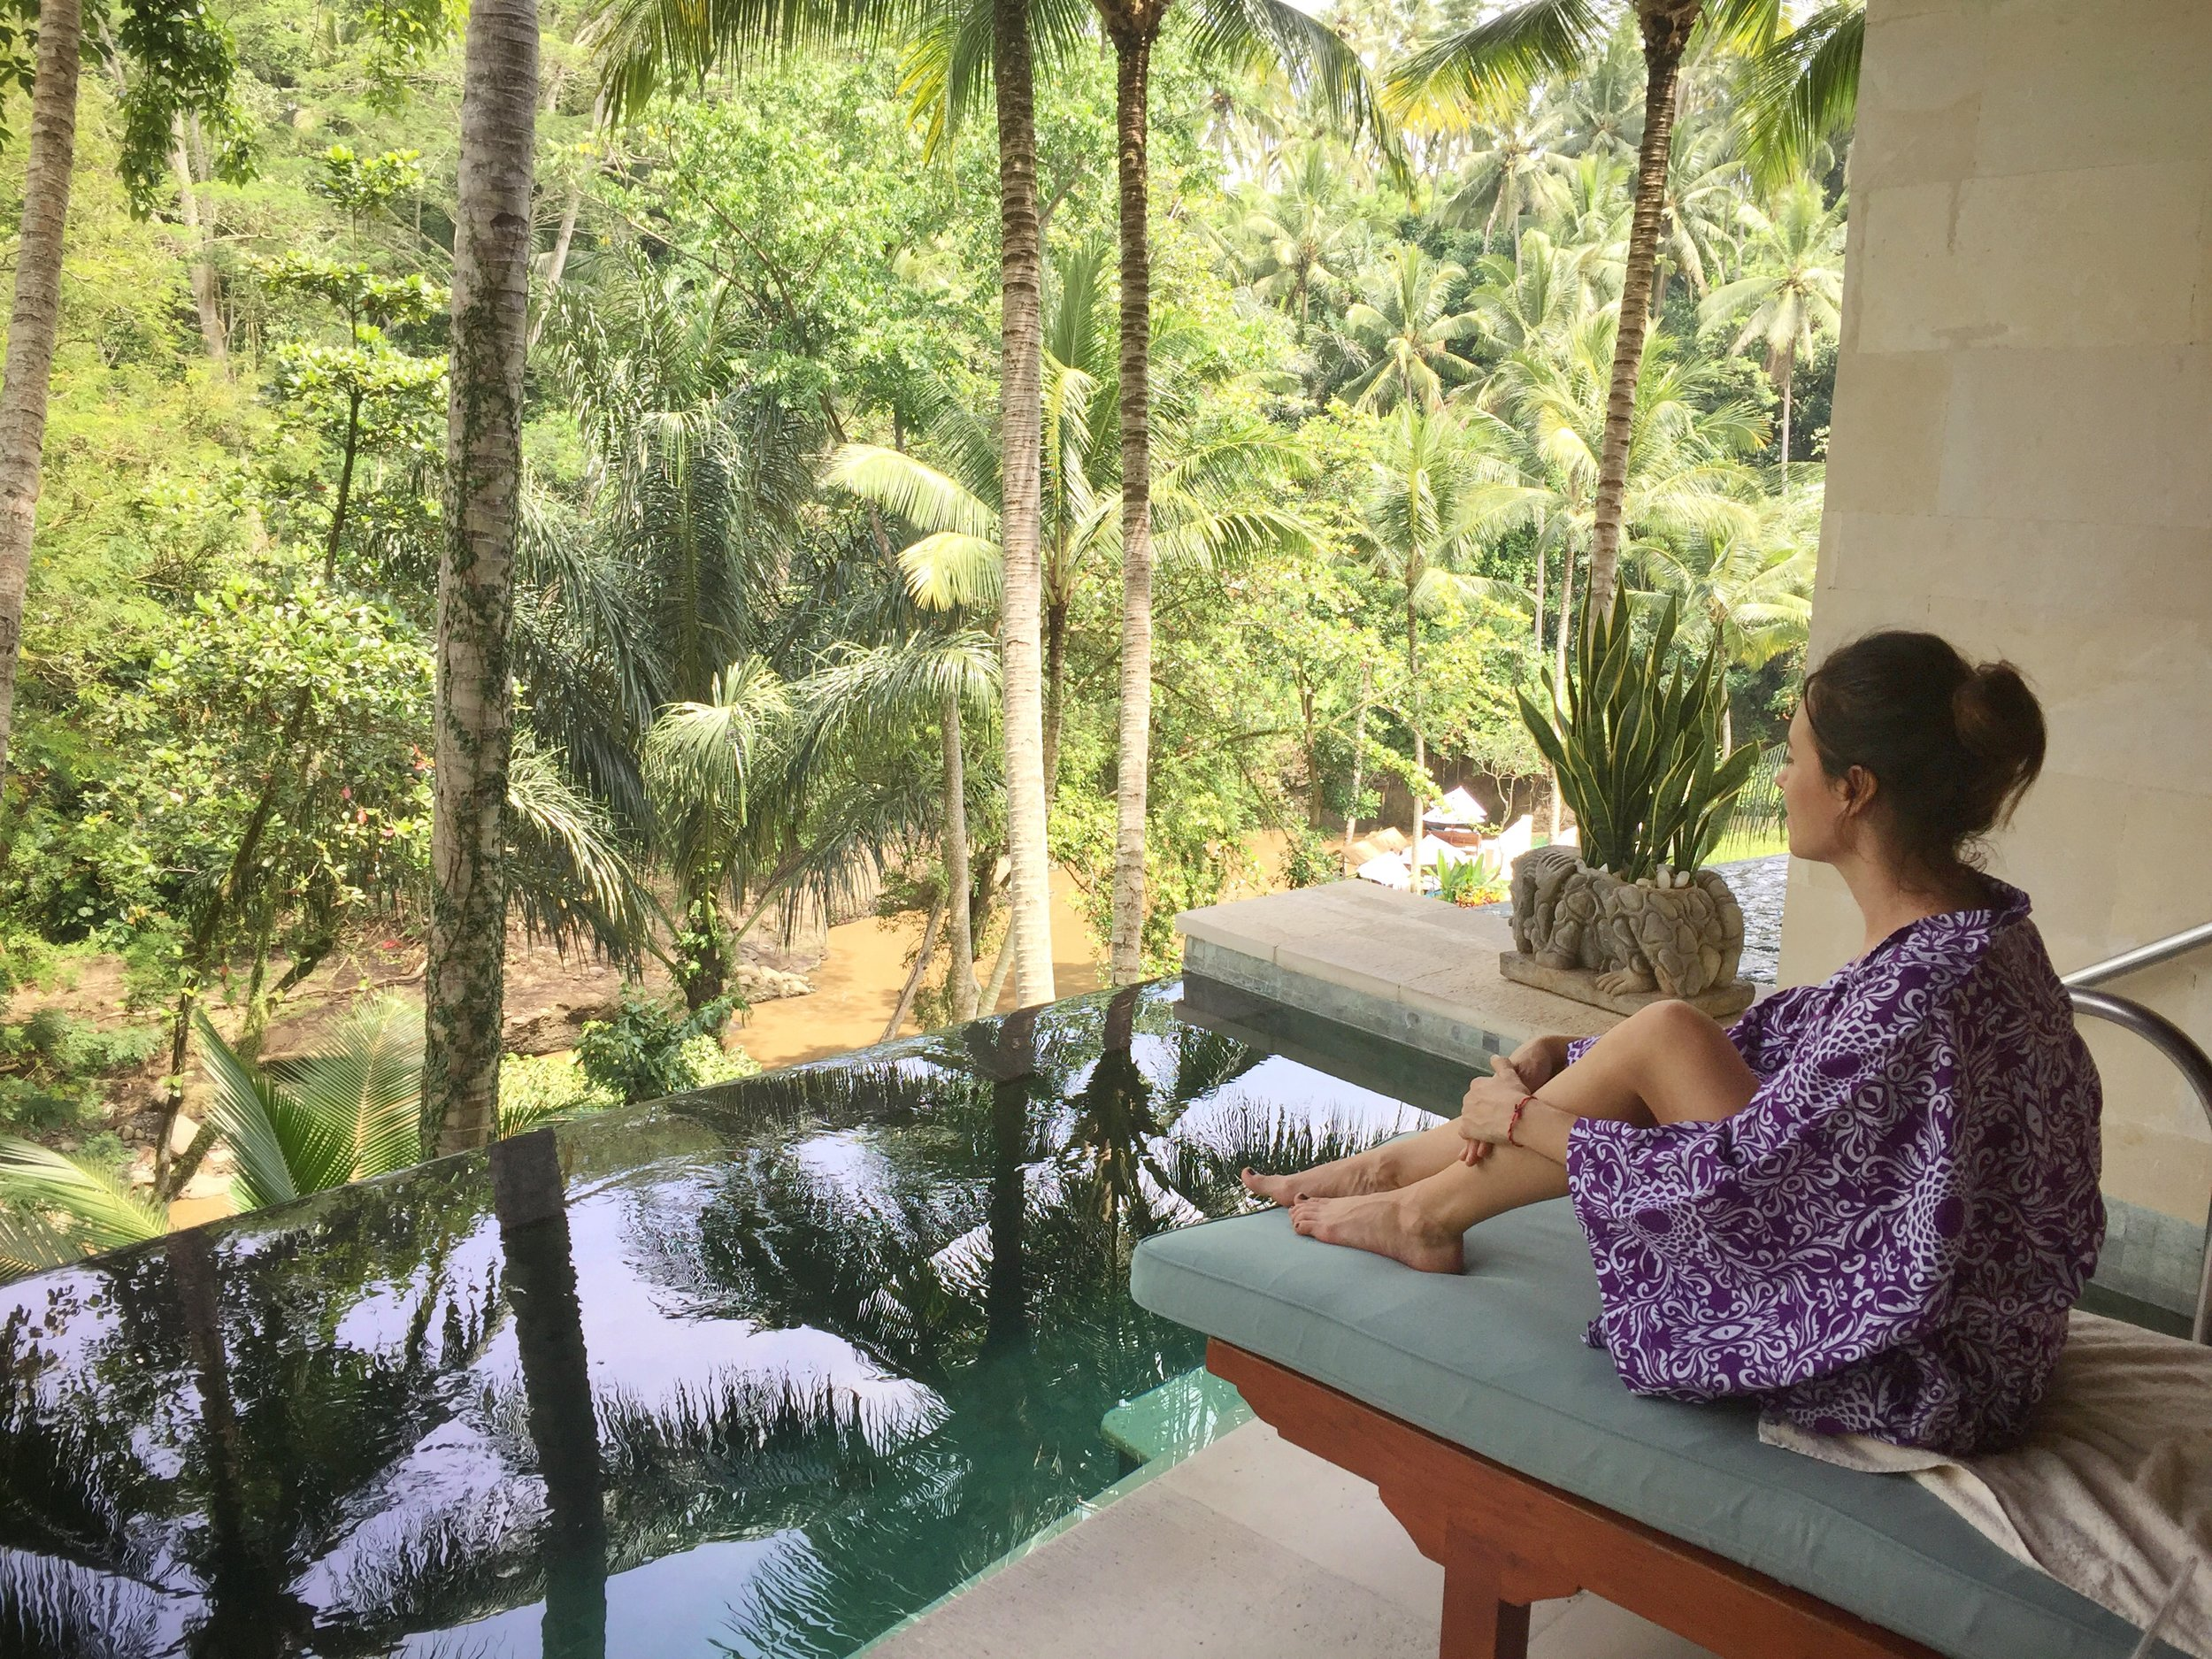 Spa time in Bali | EAT.PRAY.MOVE Yoga | Bali, Indonesia